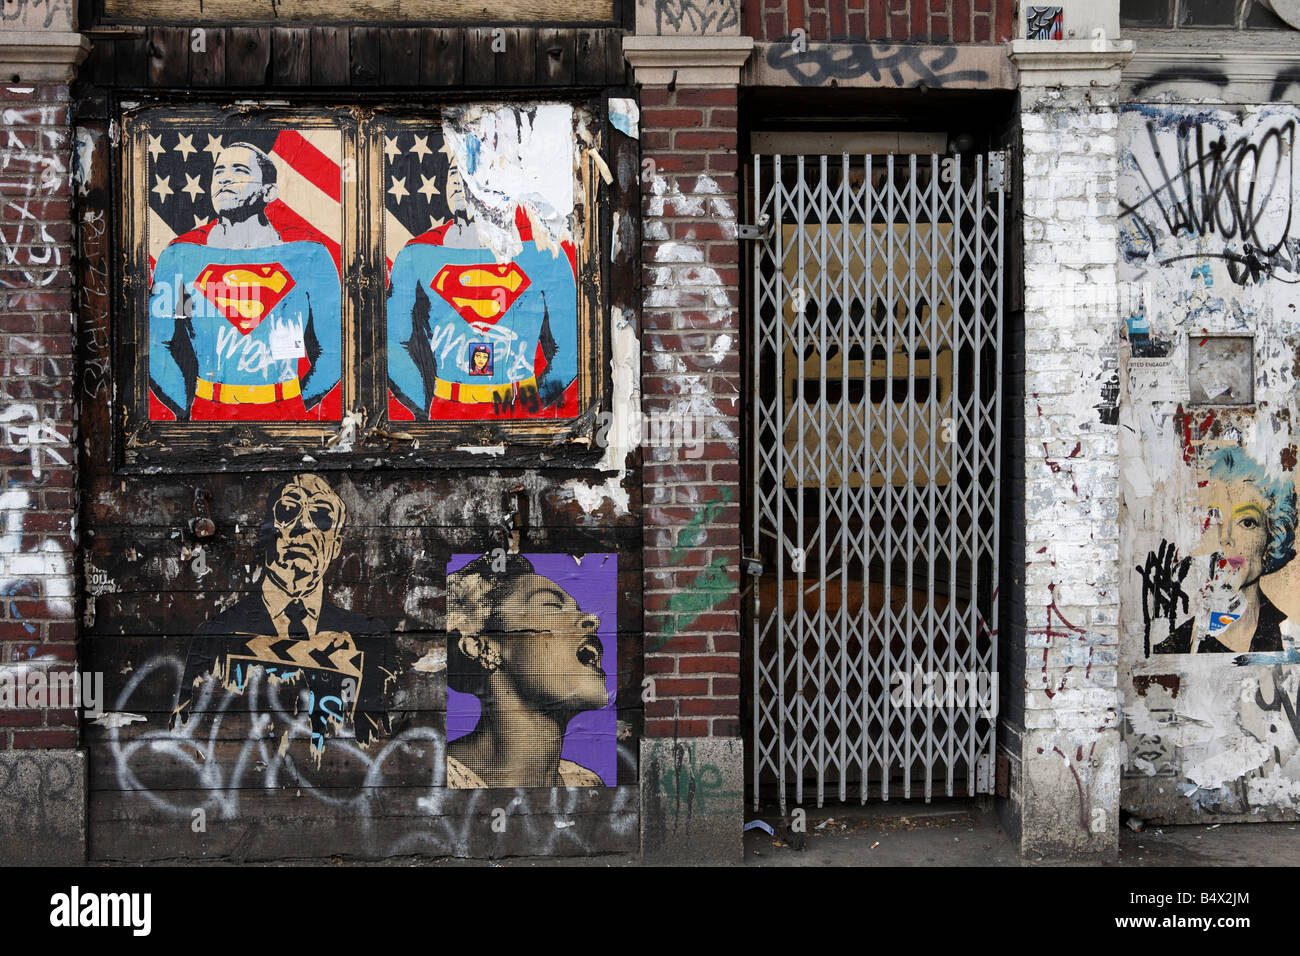 graffiti painted on building in New York - Stock Image